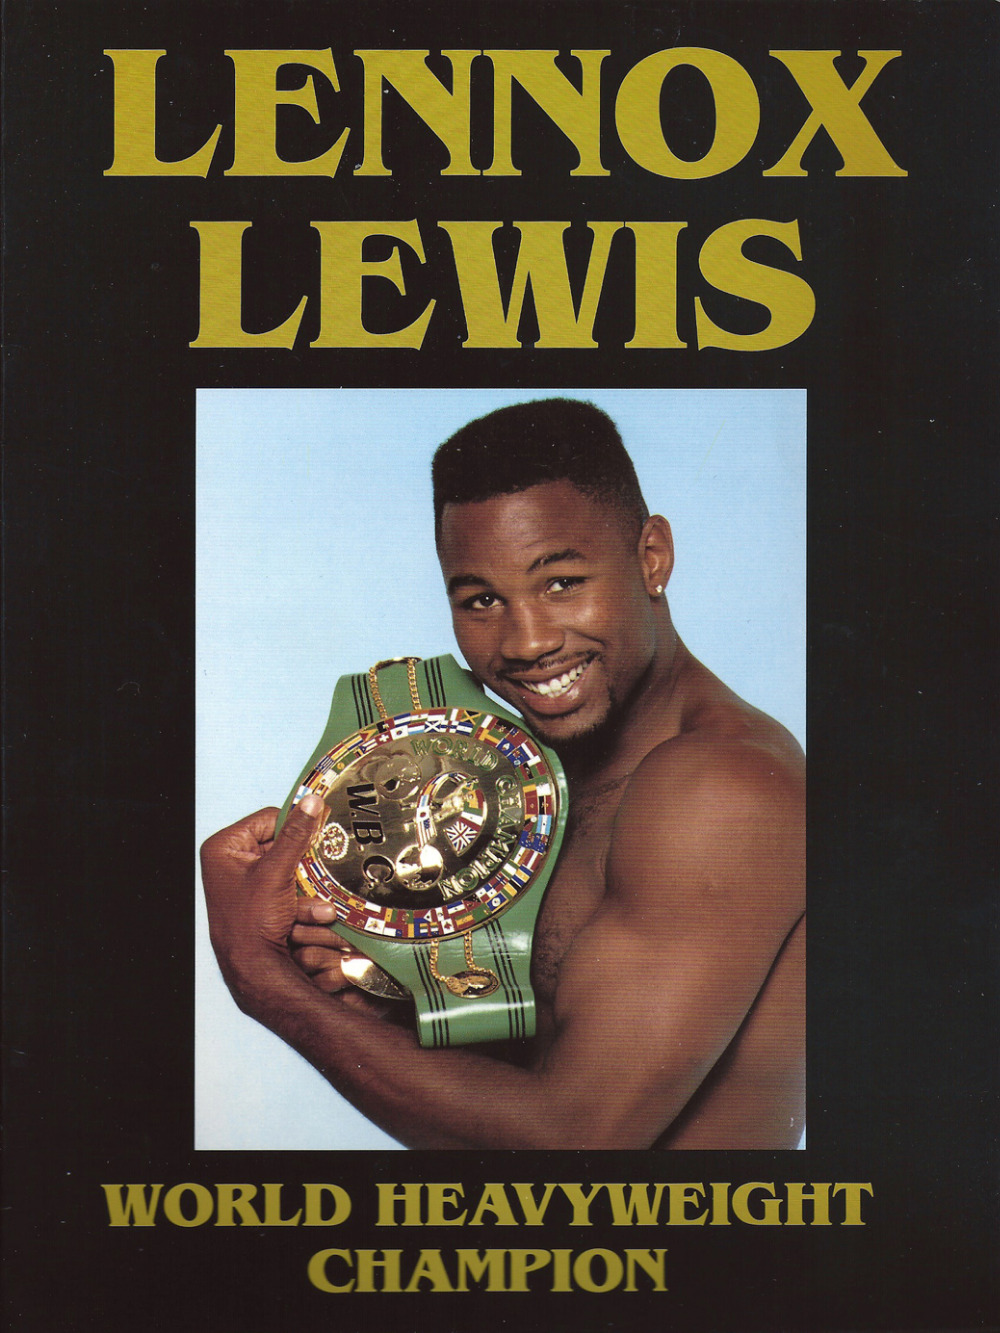 lennox lewis poster. aliexpress.com : buy lennox lewis boxing fabric poster 32\